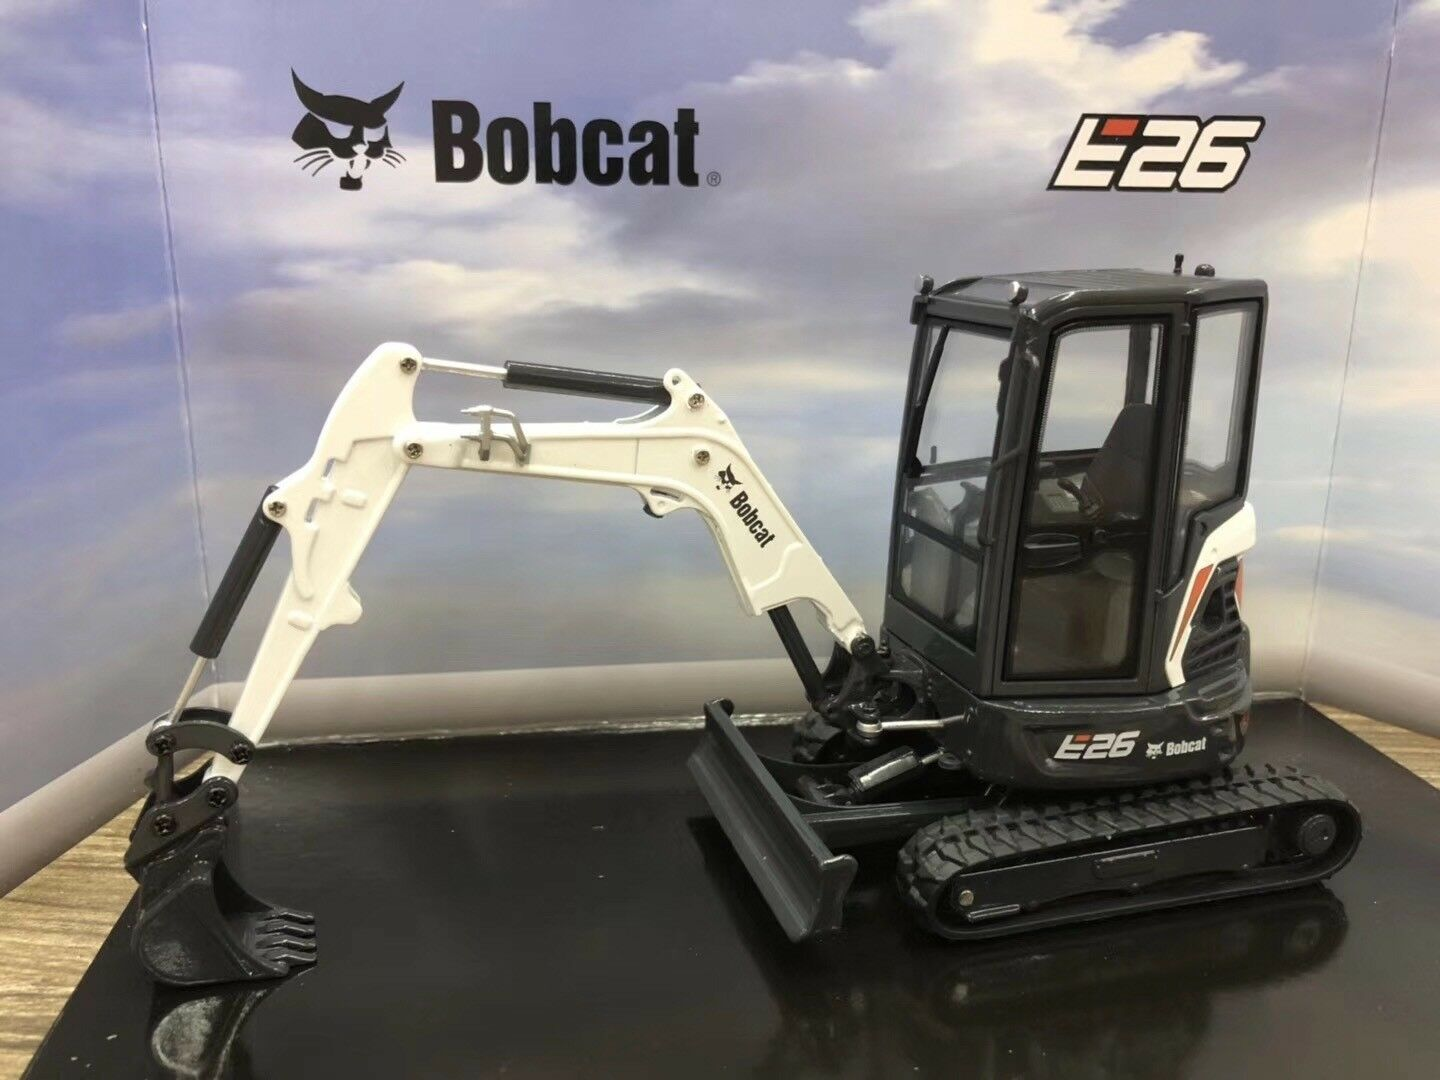 UH8132 - Bobcat E26 Compact Excavator 1 25 Scale Die-Cast Model